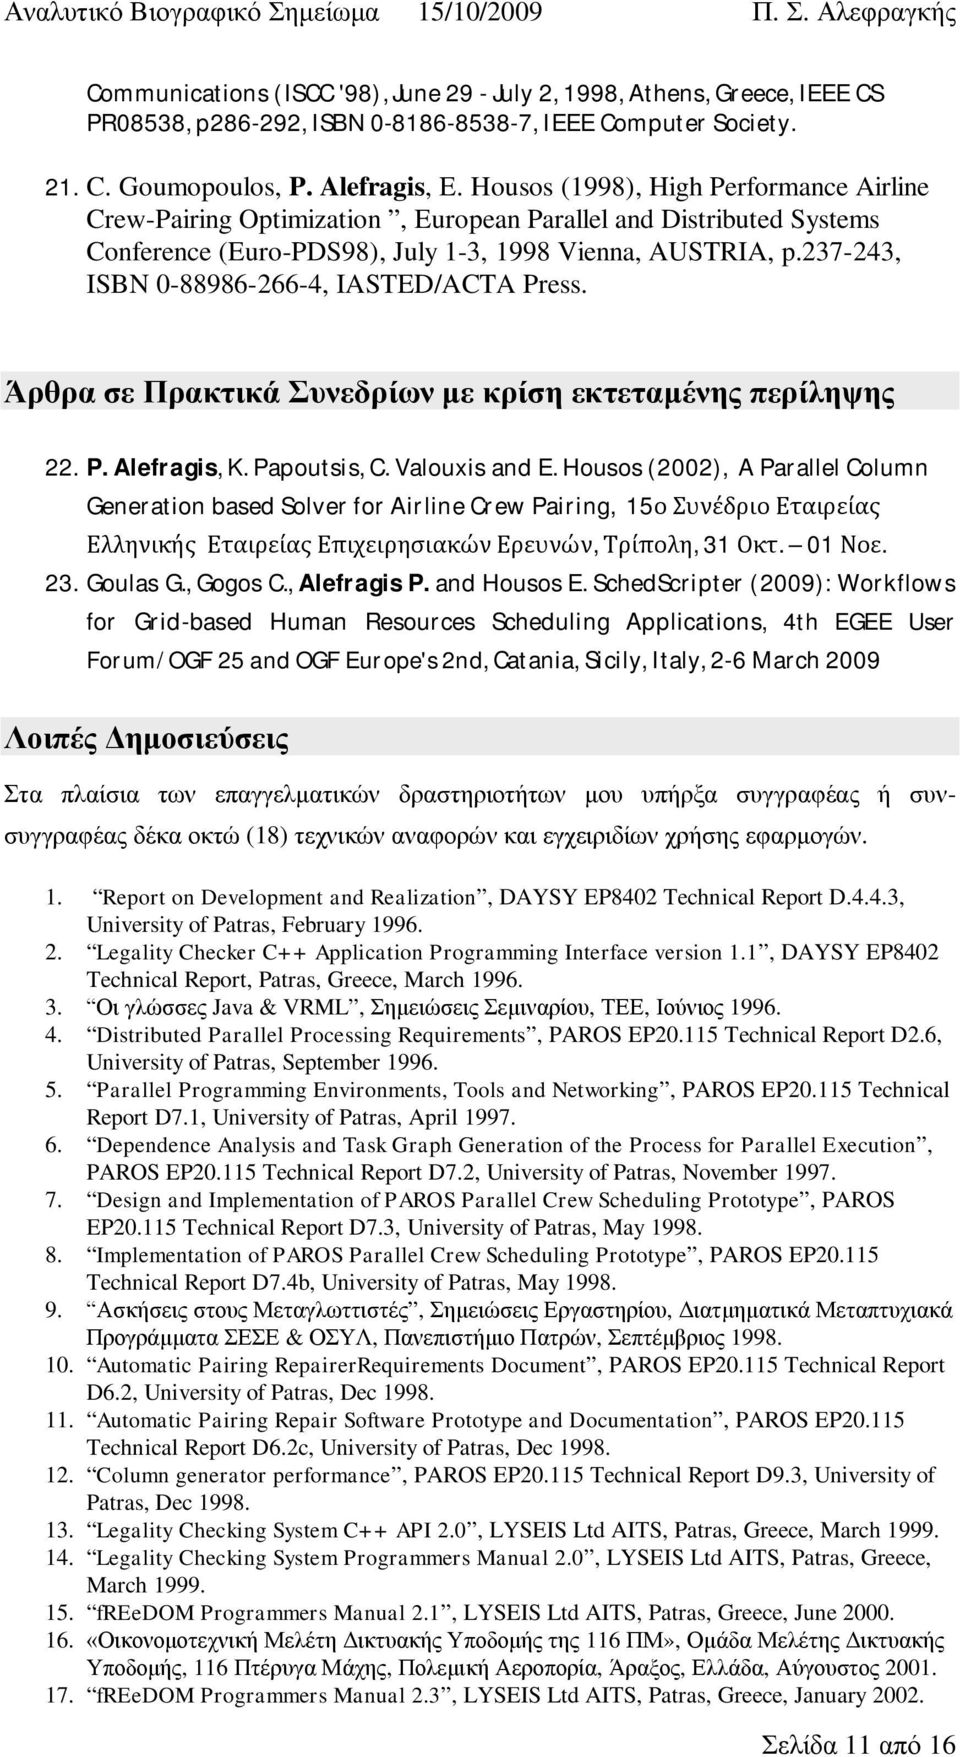 237-243, ISBN 0-88986-266-4, IASTED/ACTA Press. 22. P. Alefragis, K. Papoutsis, C. Valouxis and E. Housos (2002), A Parallel Column Generation based Solver for Airline Crew Pairing, 15,, 31. 01. 23.